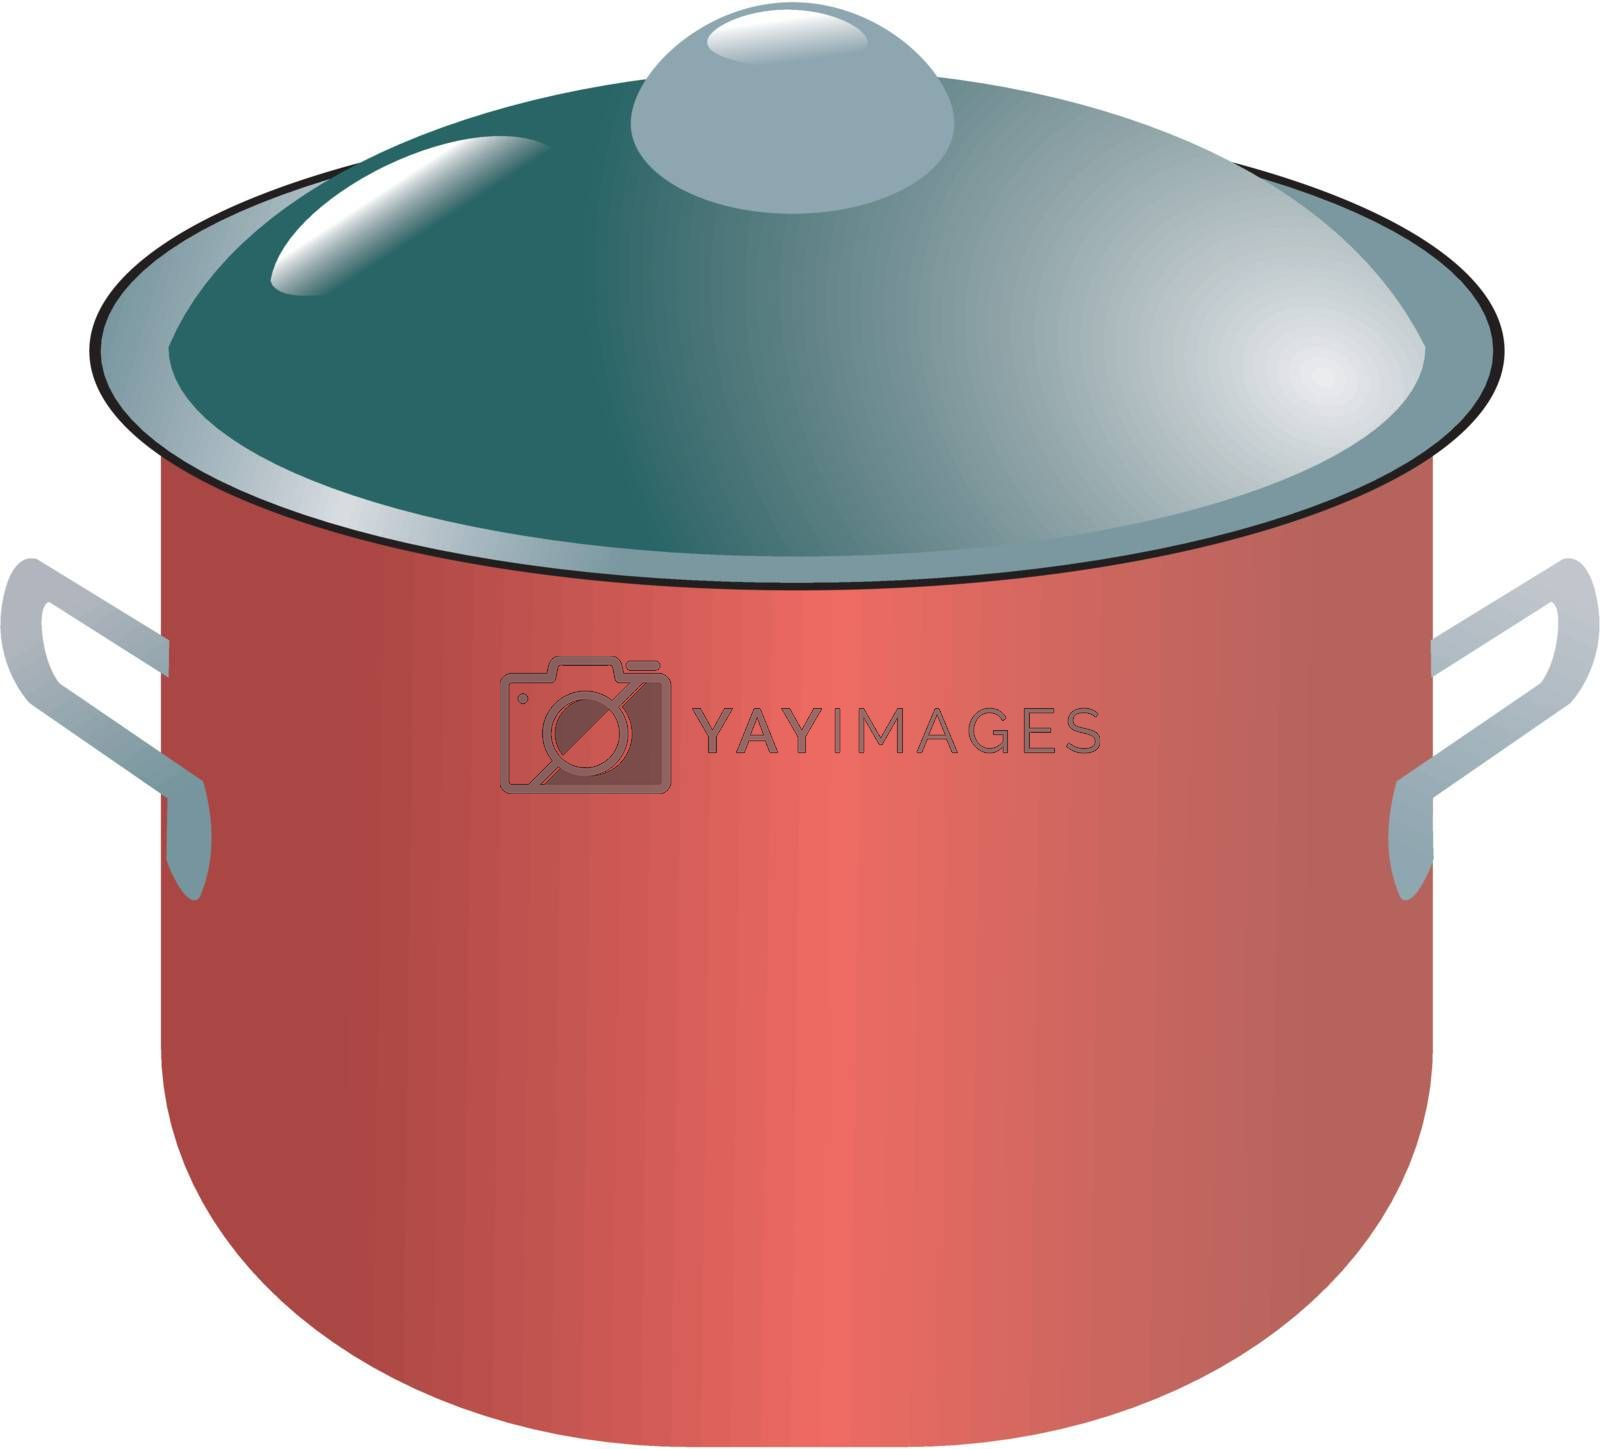 Illustration of modern saucepan on white background